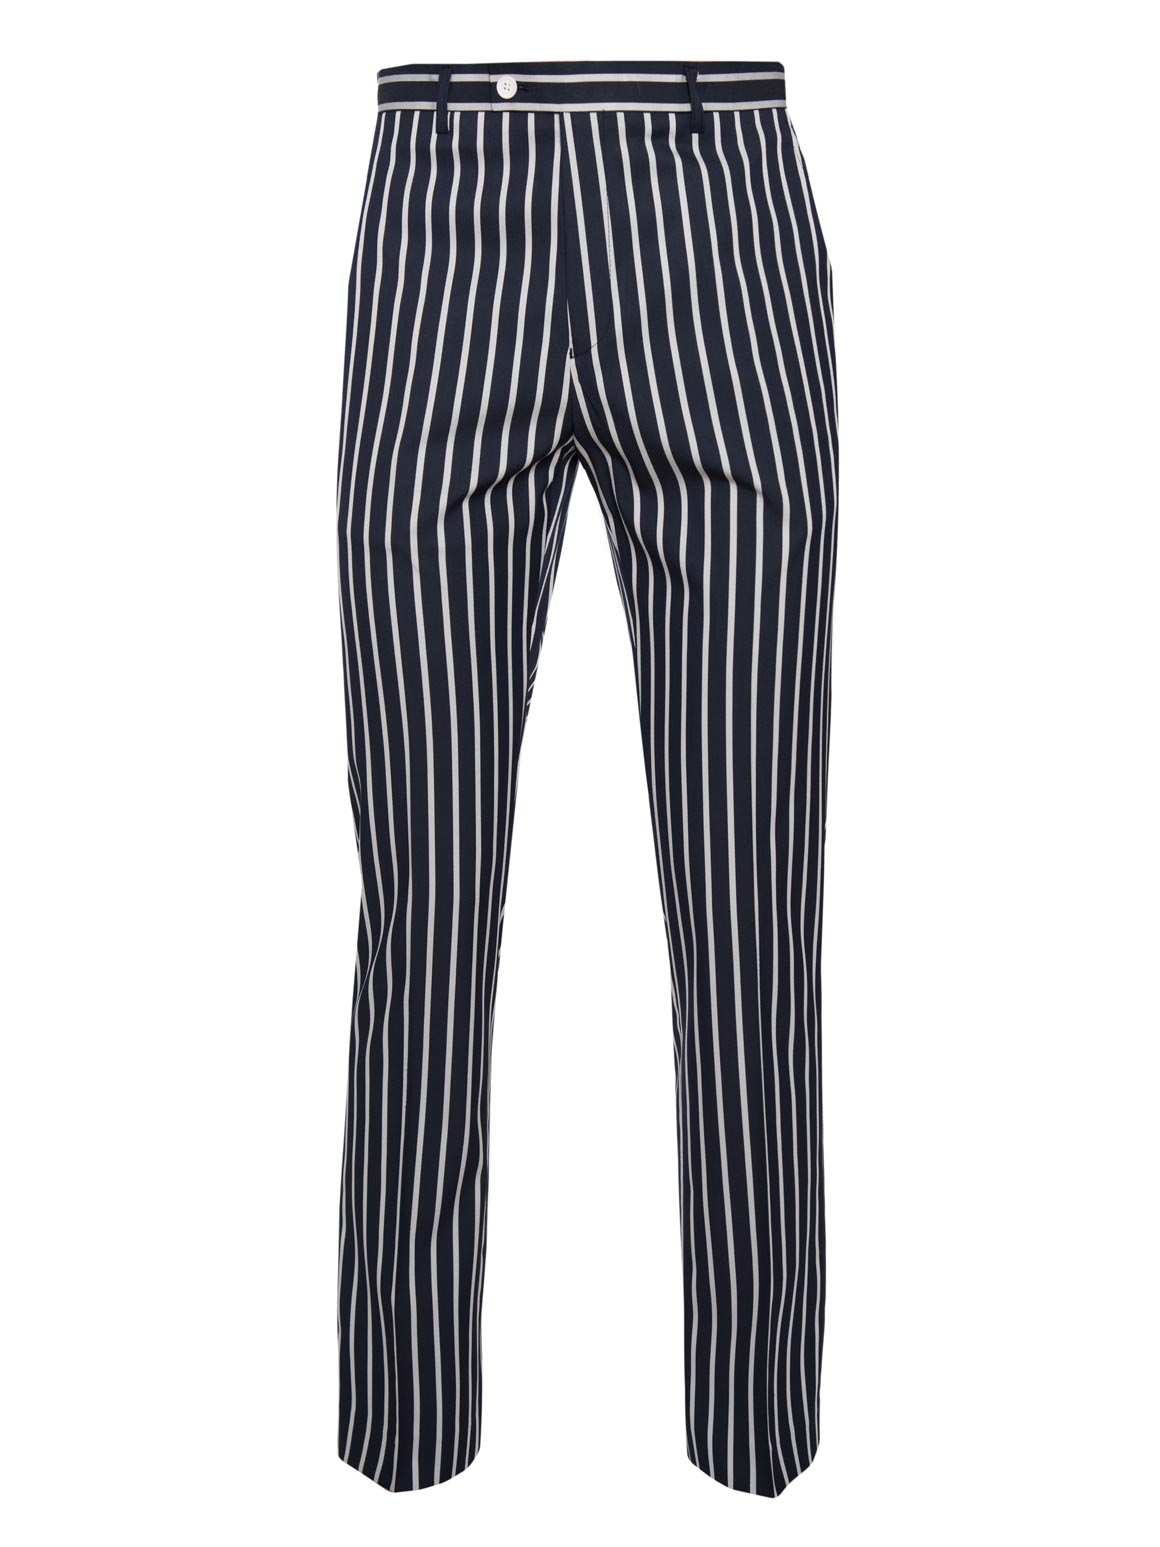 paisley & gray bold navy stripe slim fit suit pant 2157P